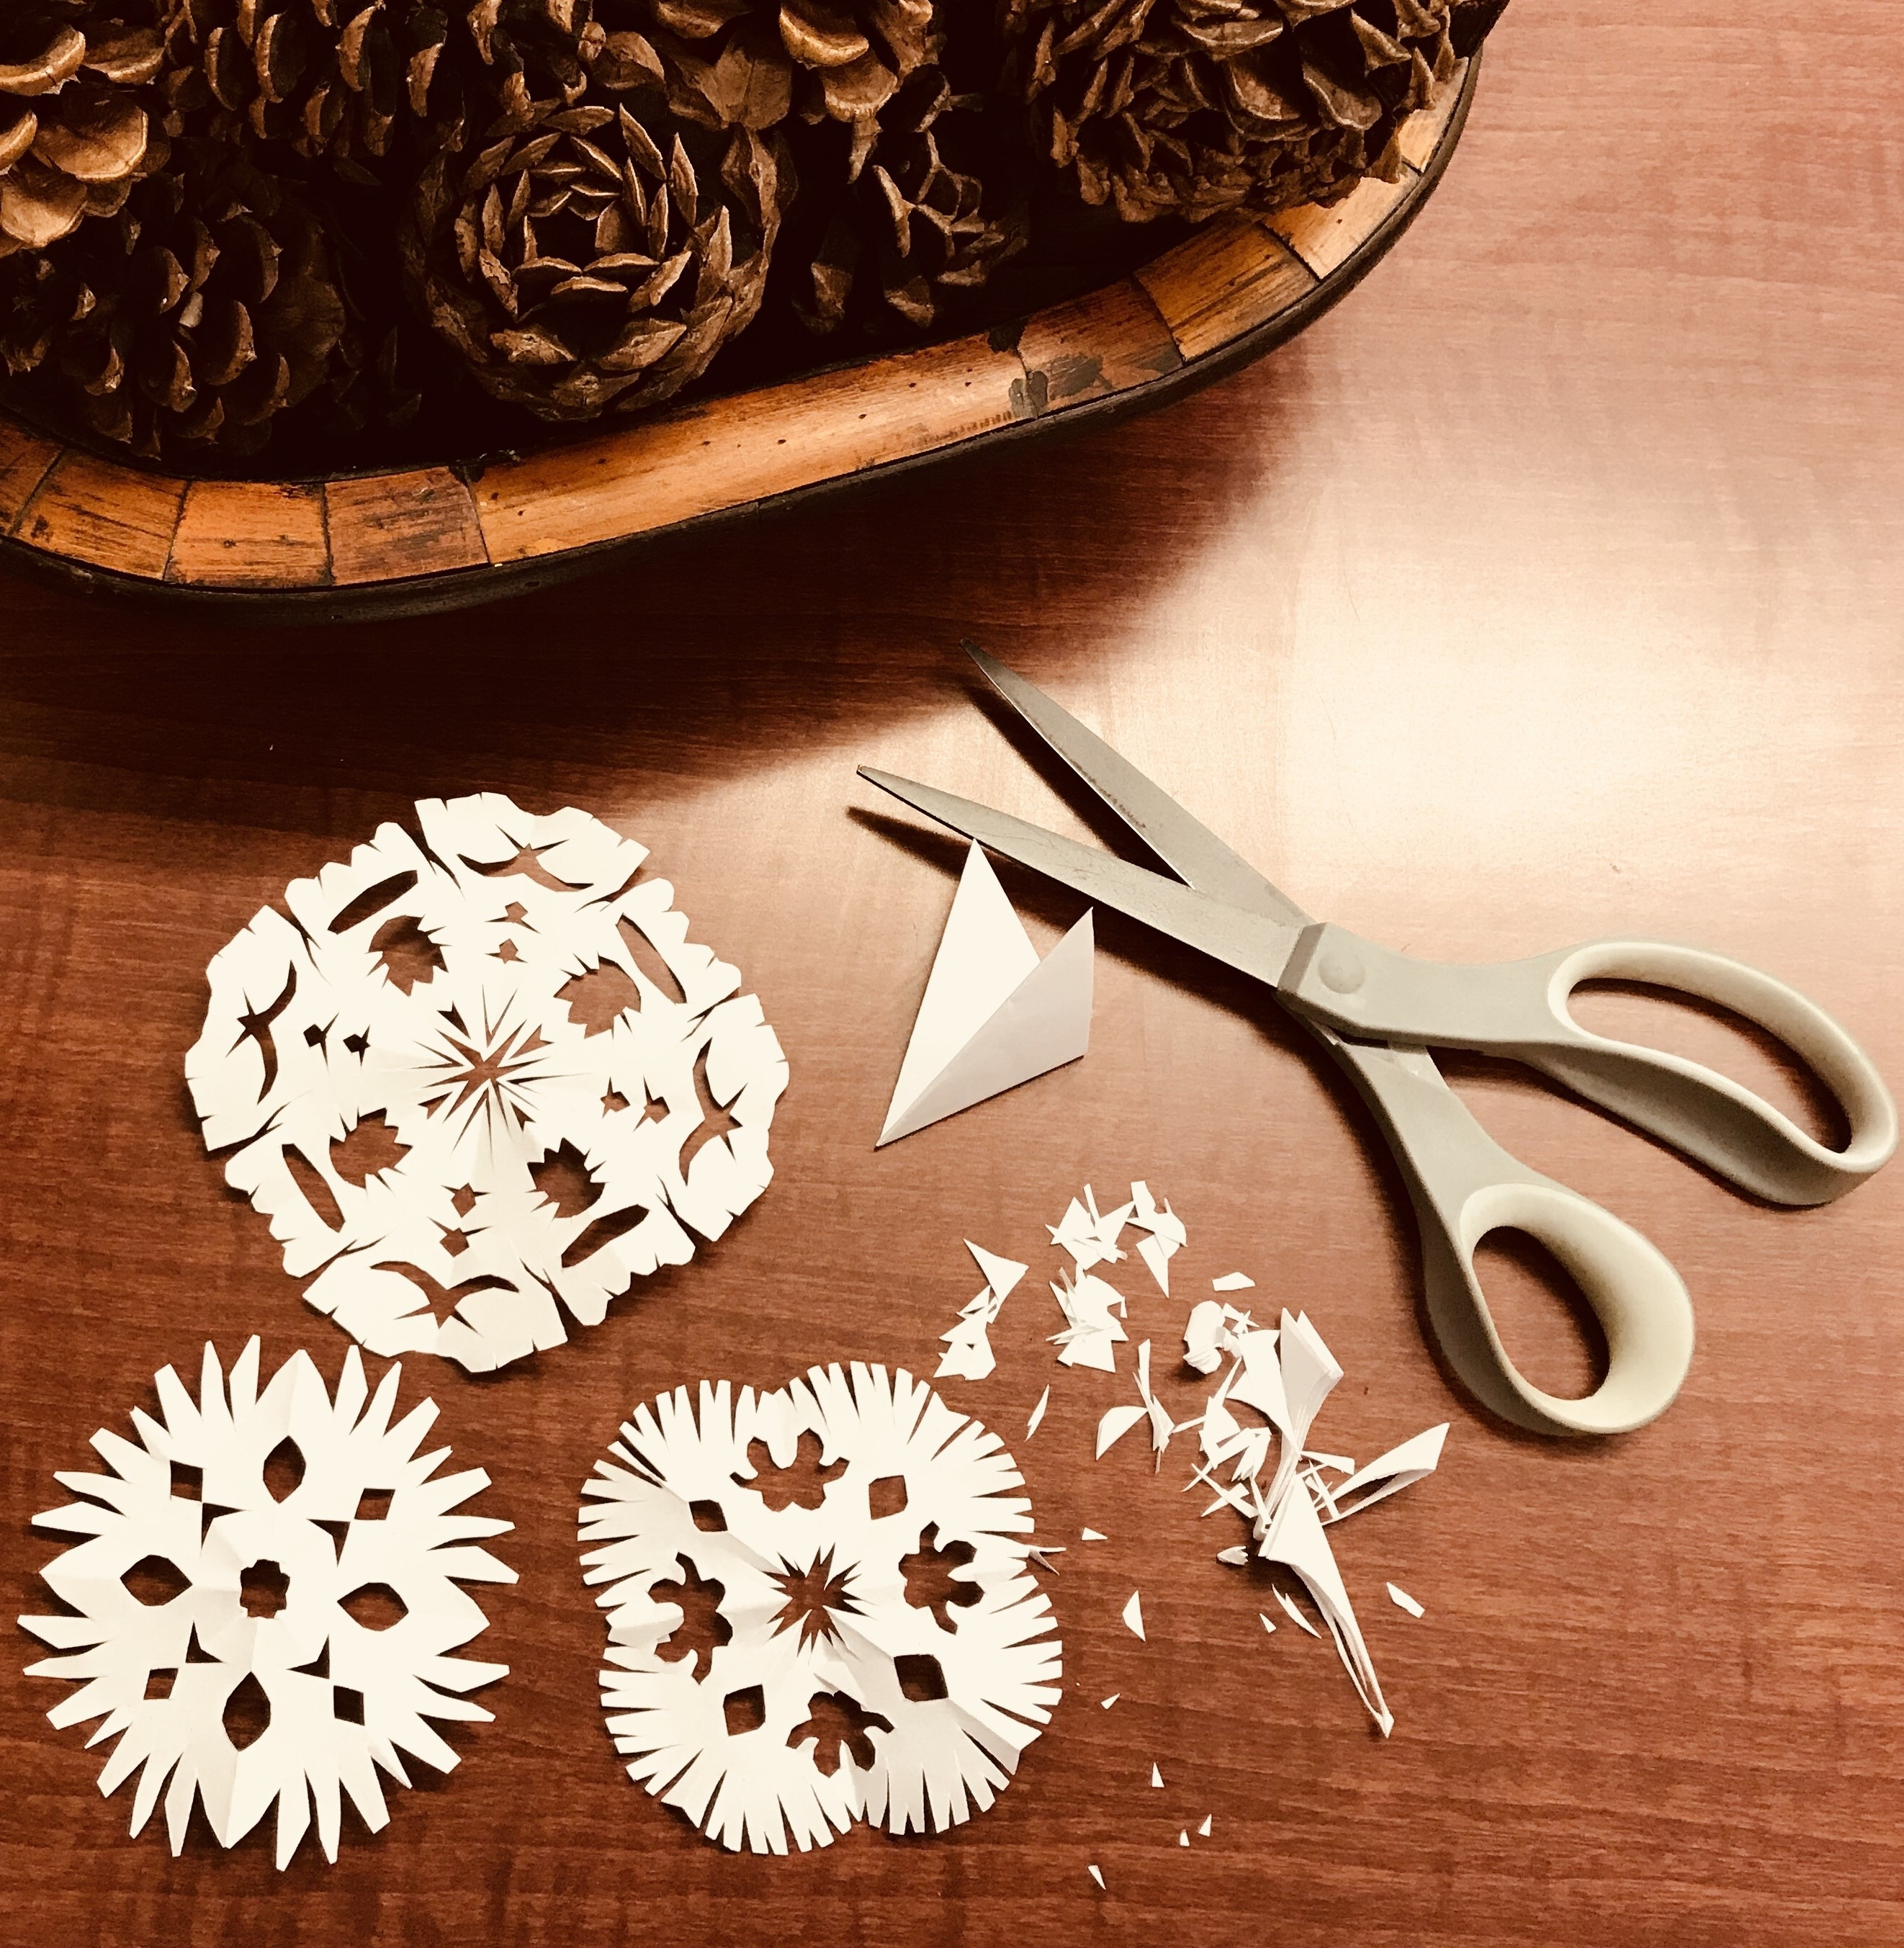 Make Your Own Snowflakes!